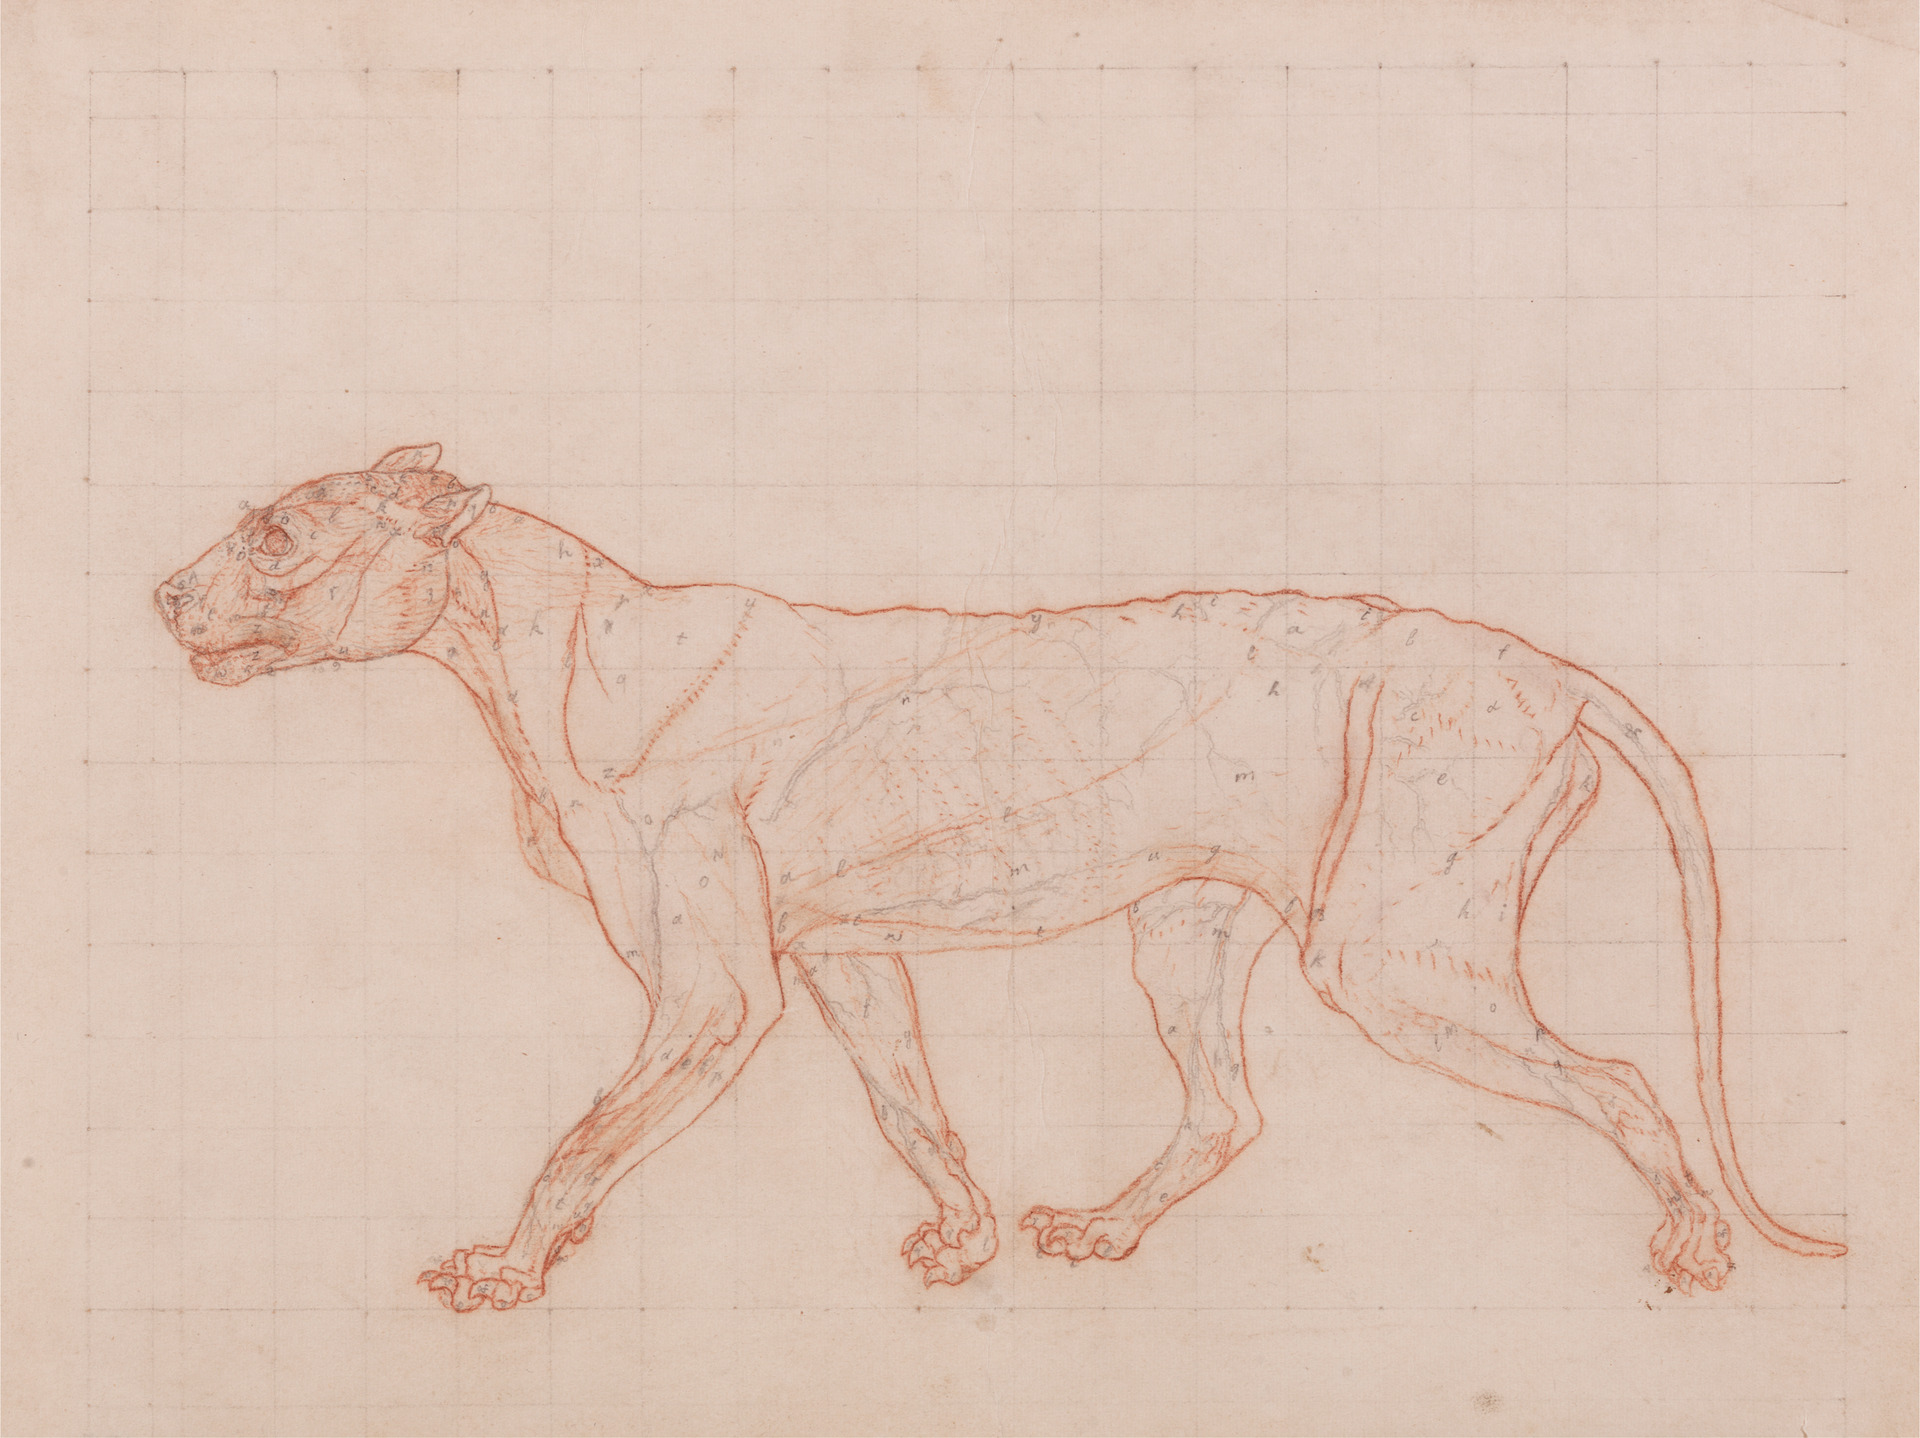 George Stubbs. Tiger Body, Lateral View.